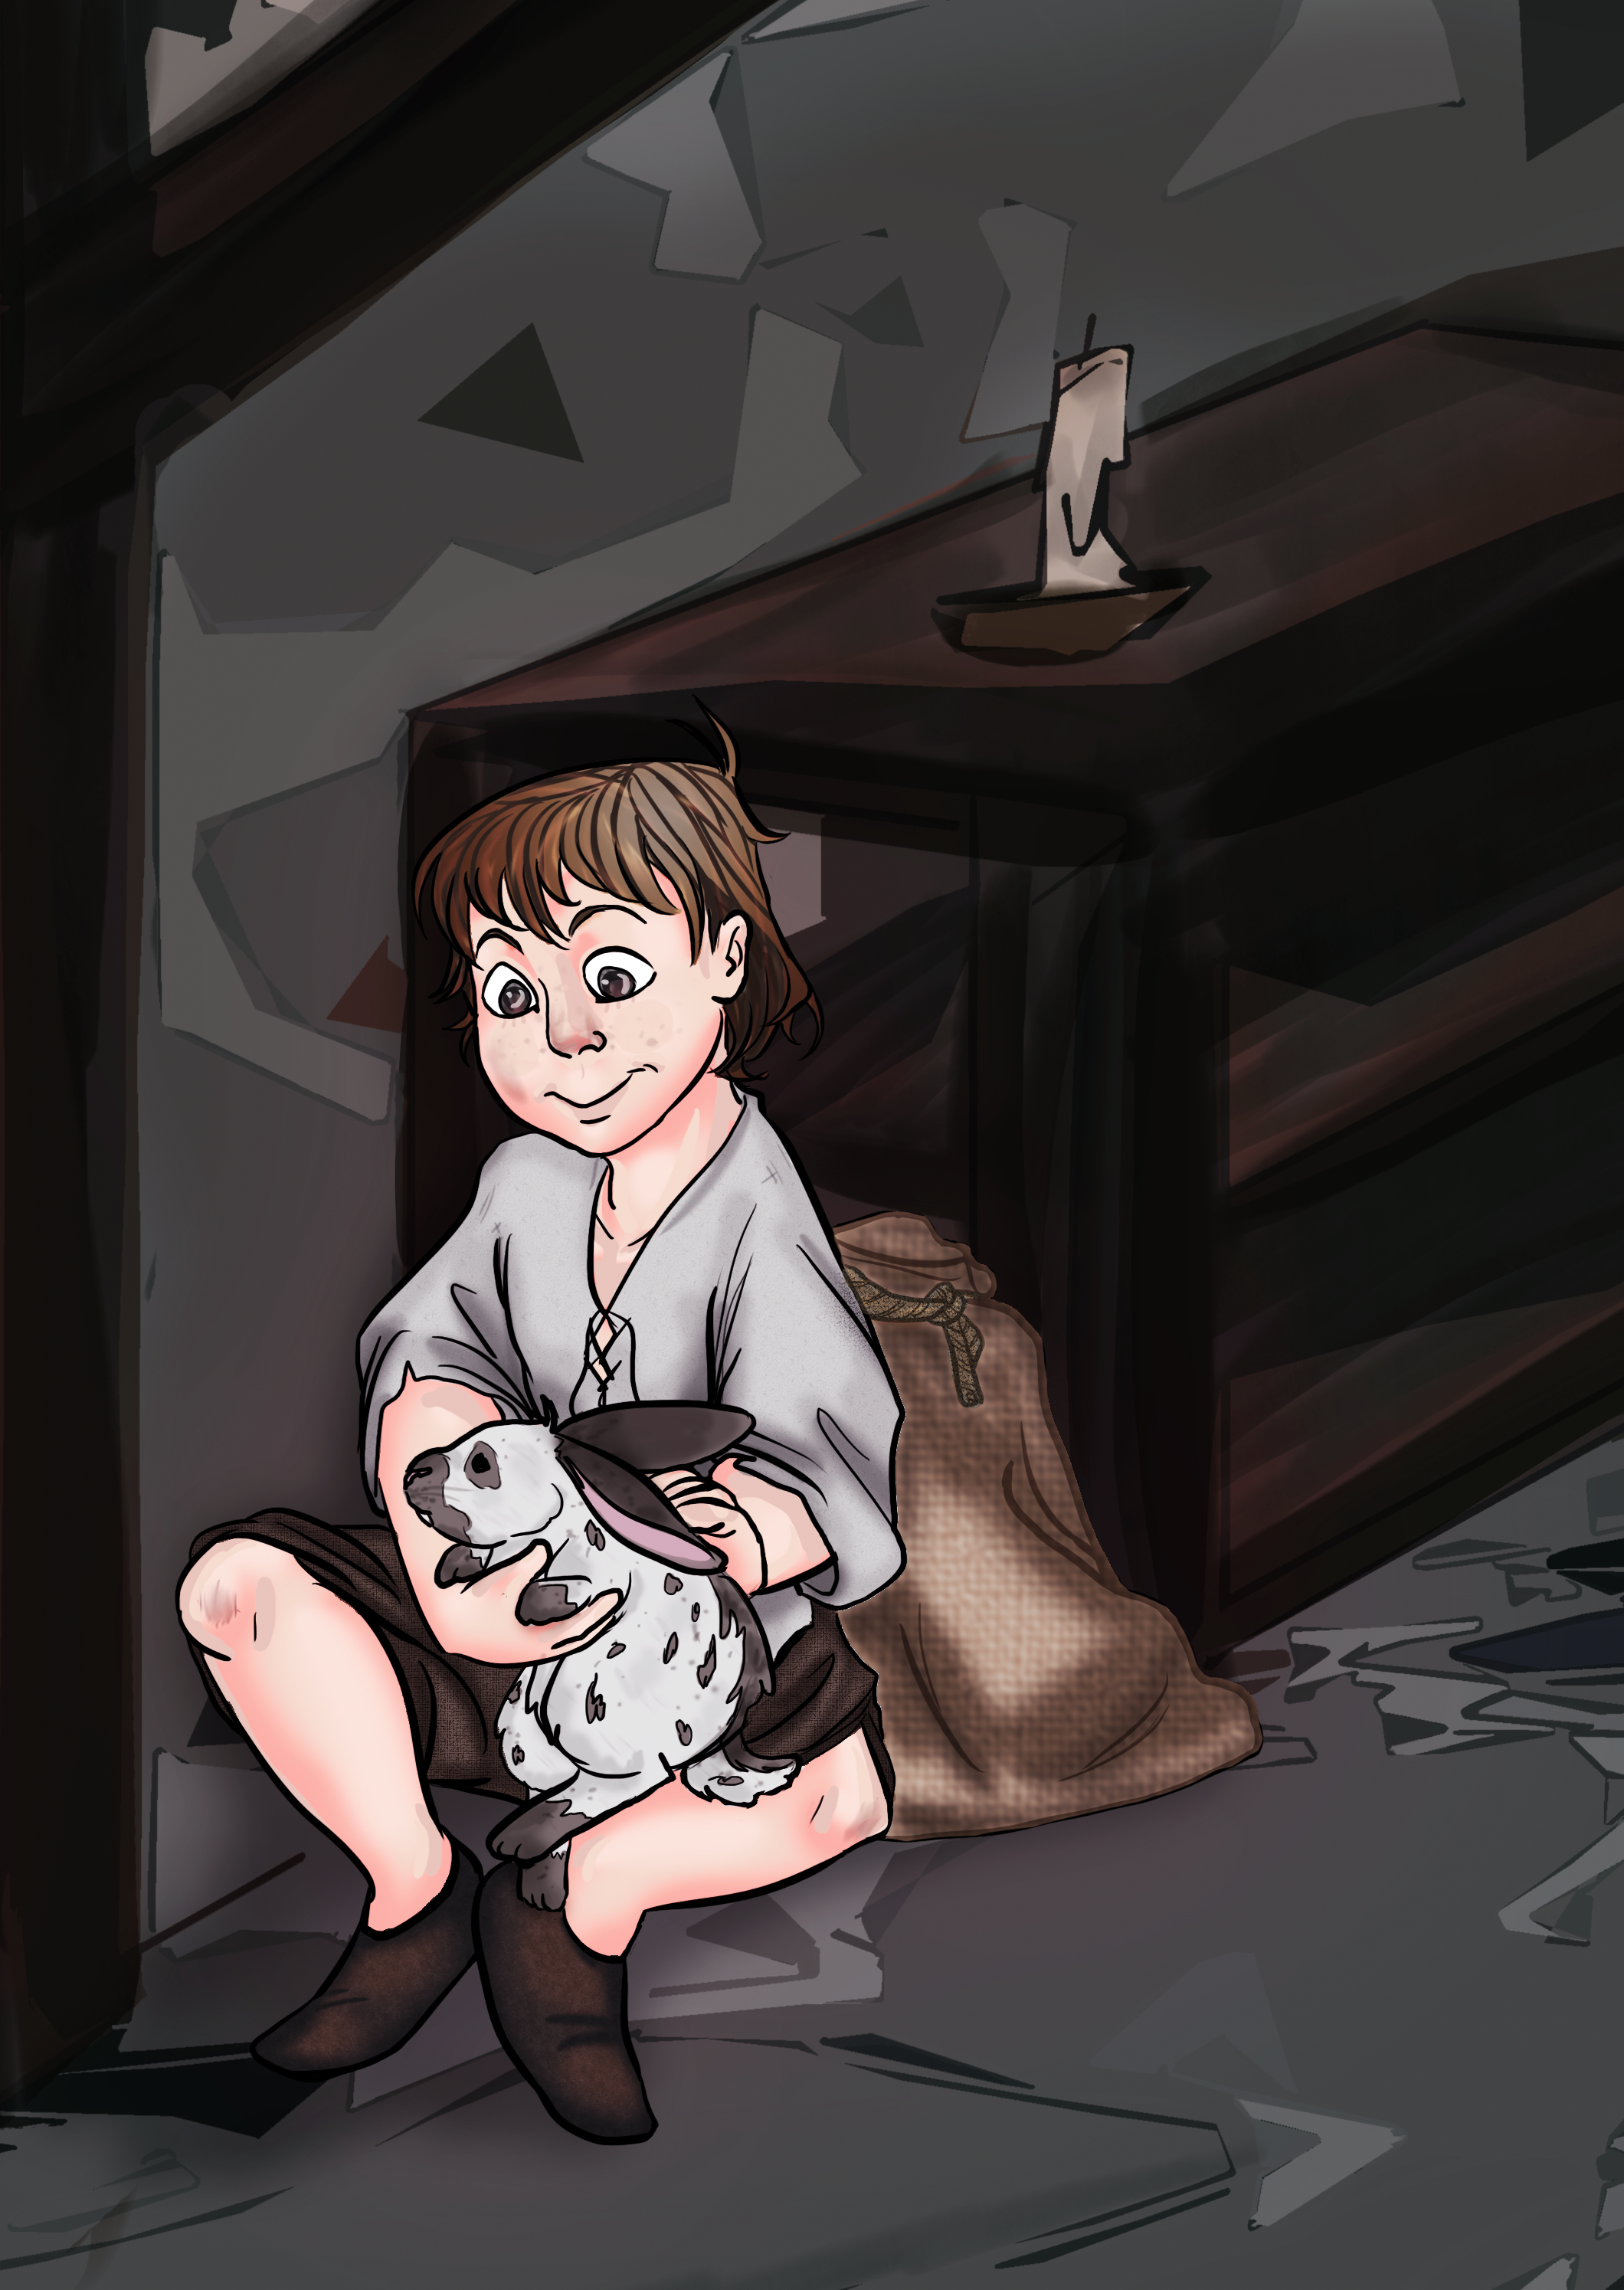 'A Boy and his Rabbit' by Flags. For more of their work, visit their art blog on Tumblr,  @thecreepingkid